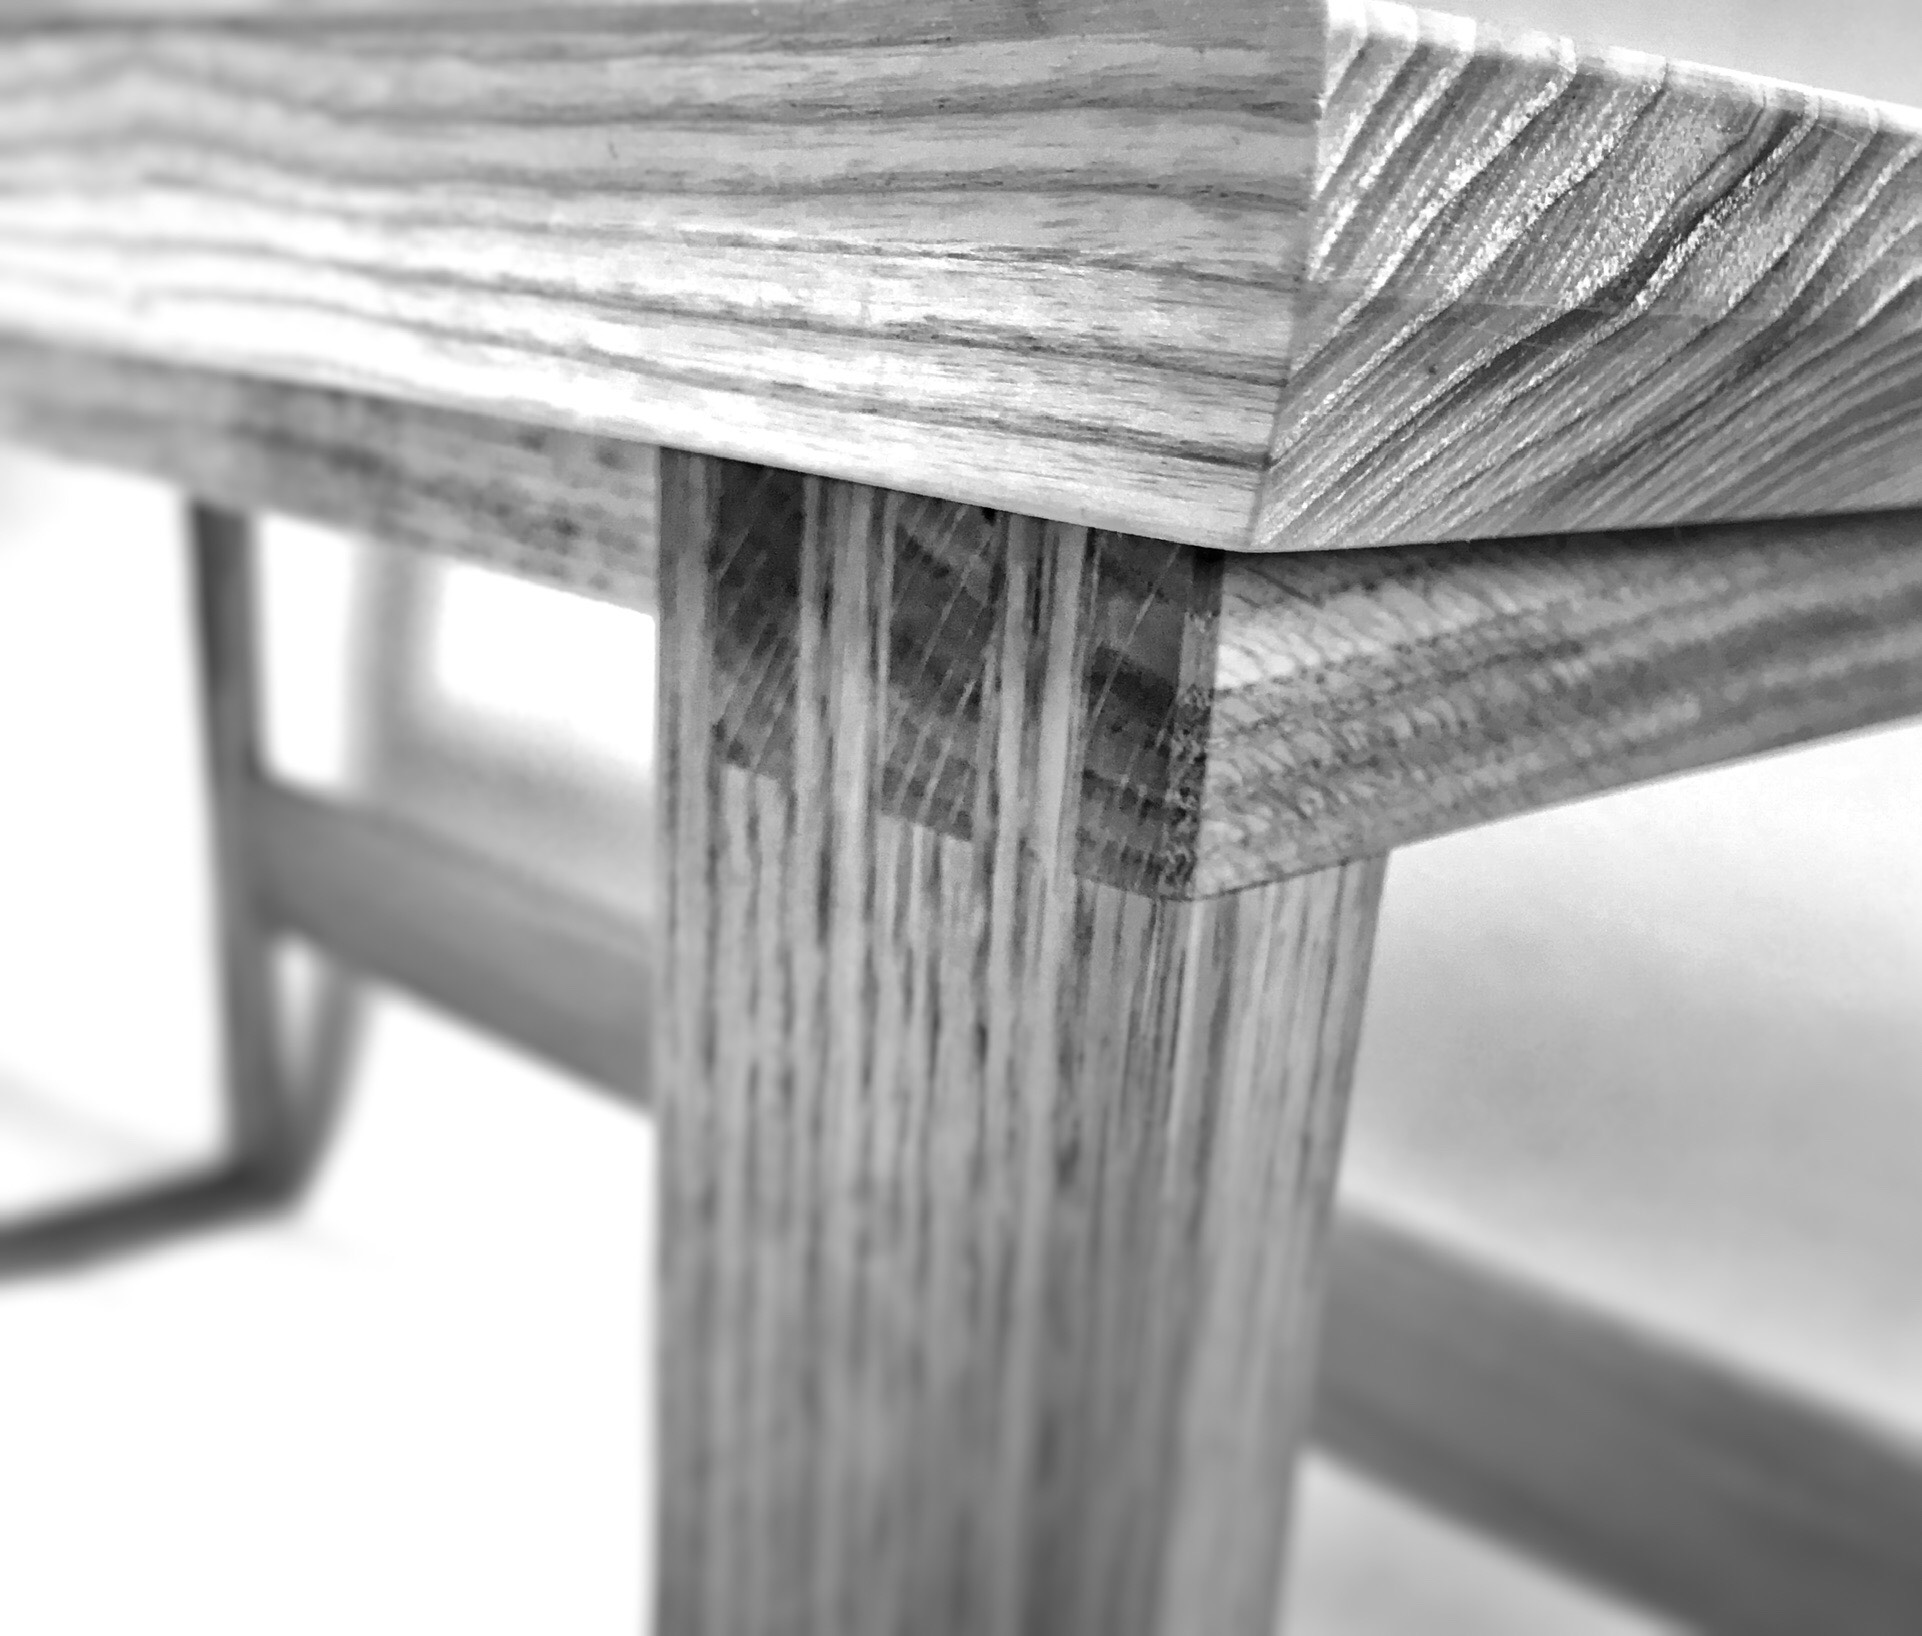 Miller desk joint detail